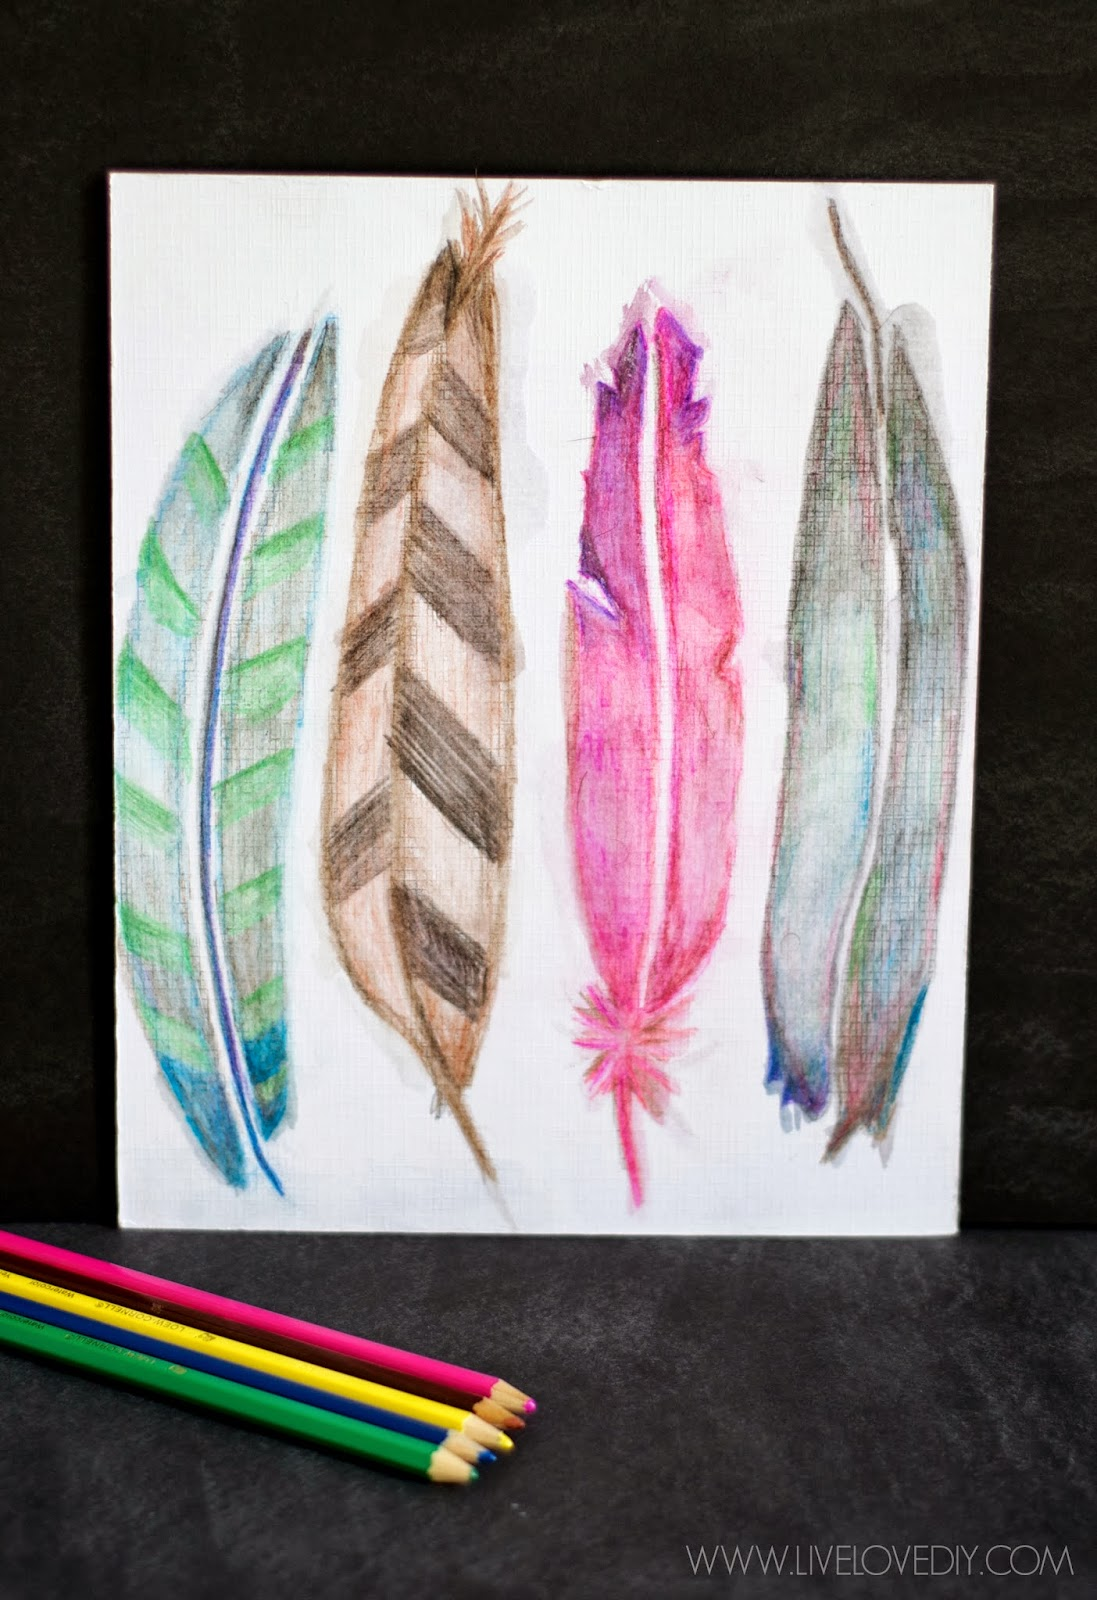 Livelovediy How To Use Watercolor Pencils Aka My Favorite New Way